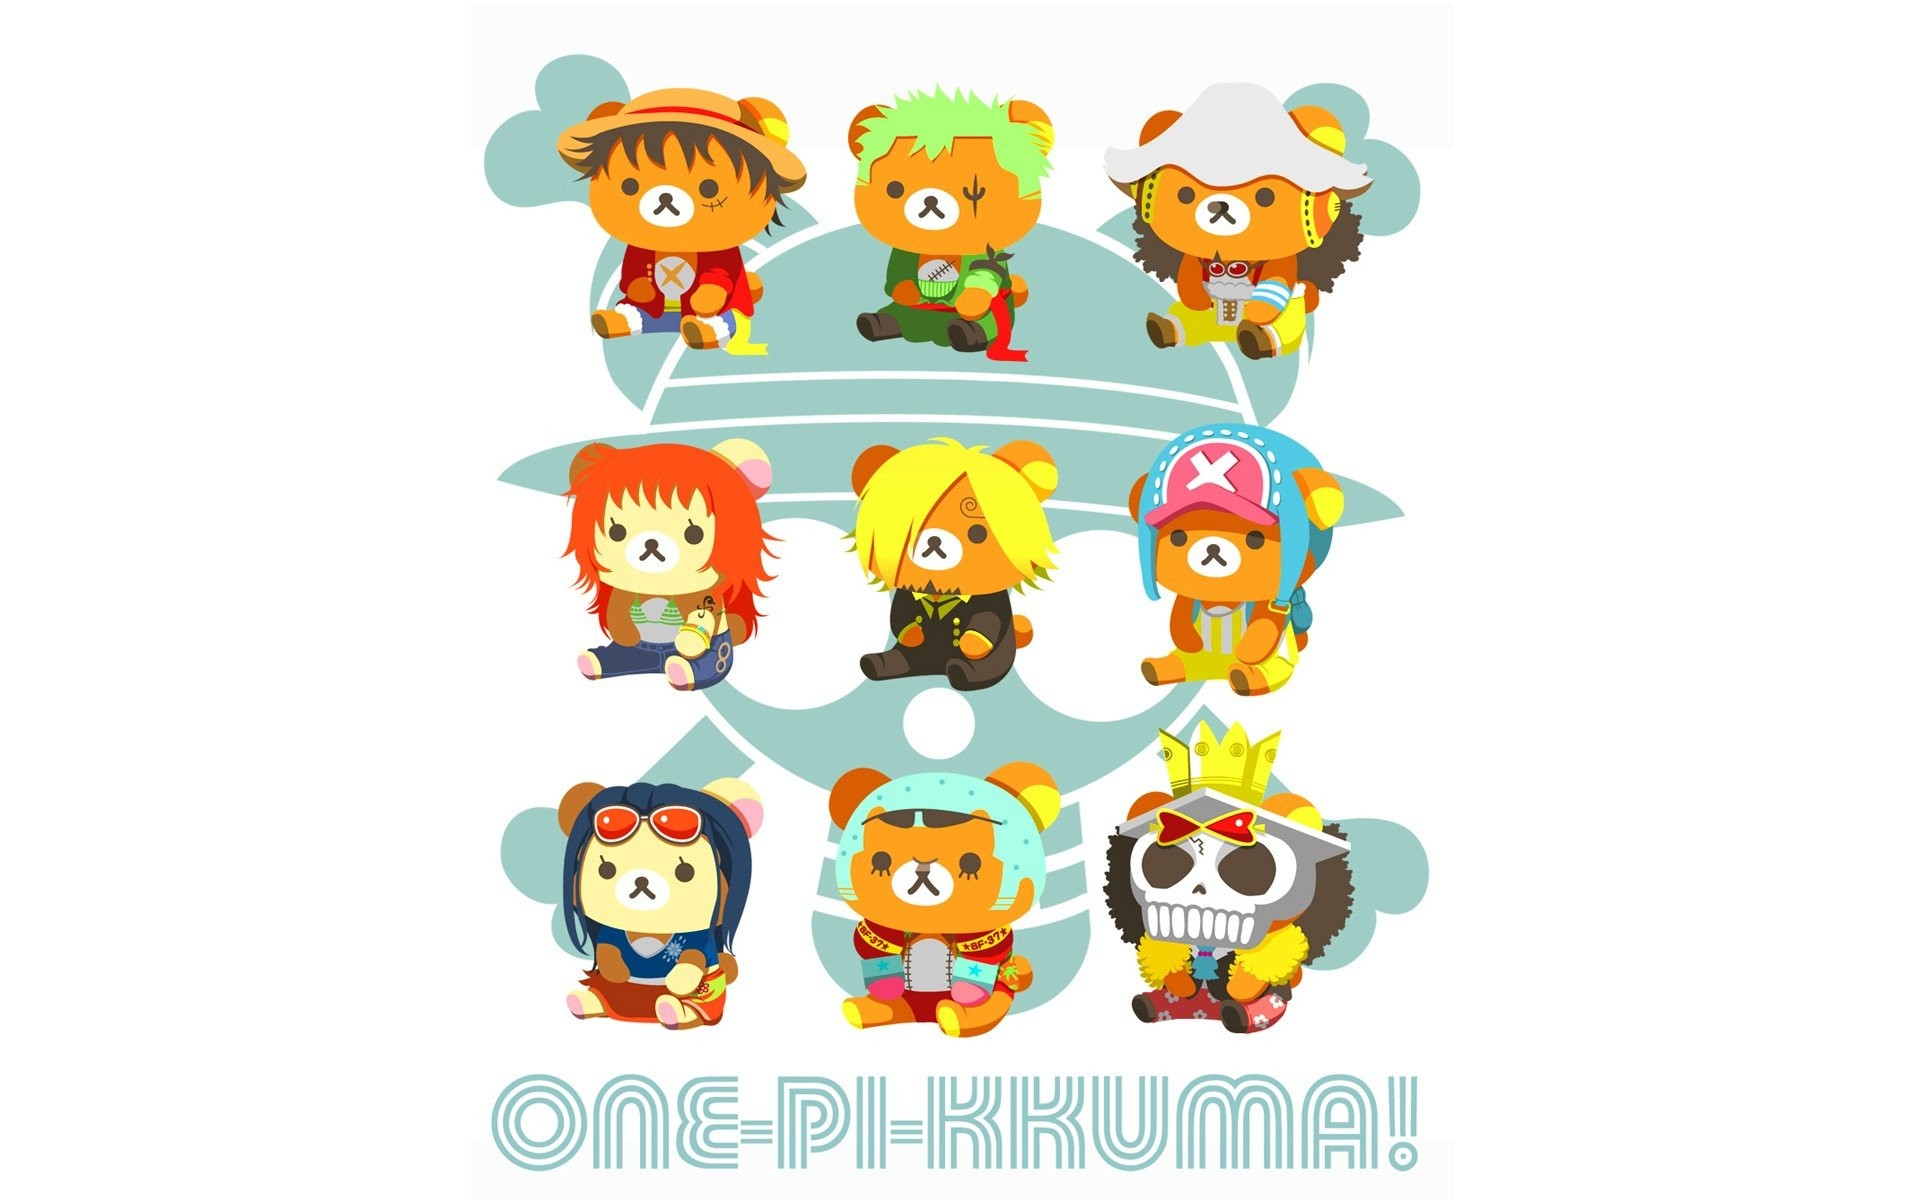 1920x1200 One Piece (anime) Rilakkuma wallpaper |  | 264622 | WallpaperUP